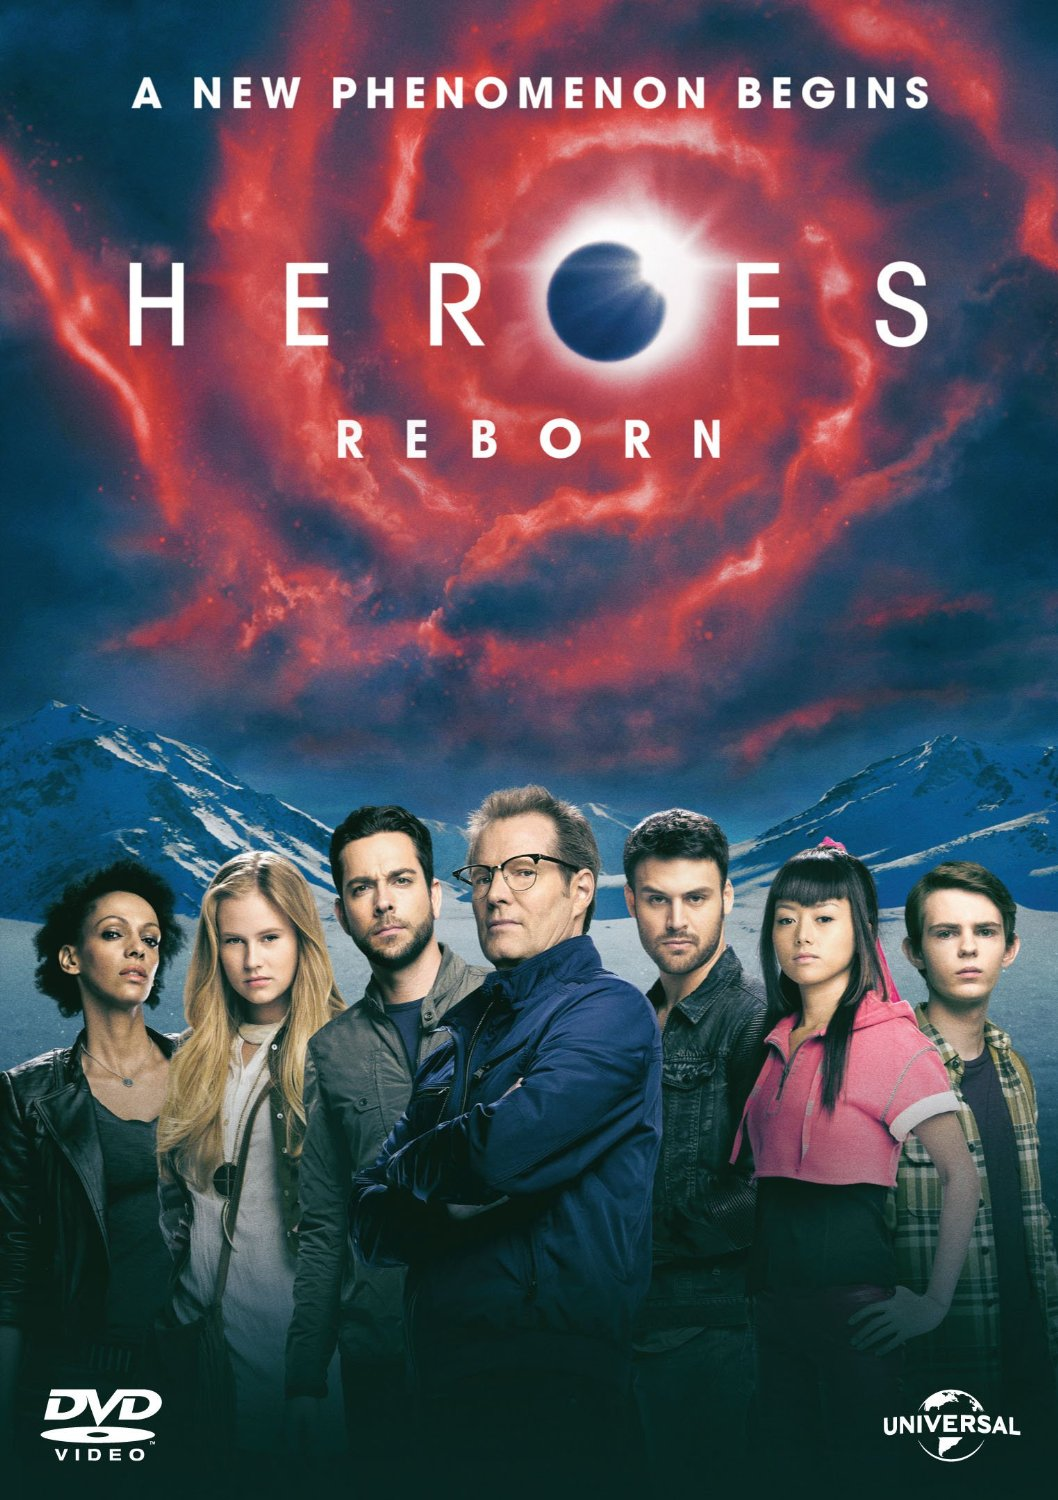 Heroes Reborn Blu-ray review: worth the wait?